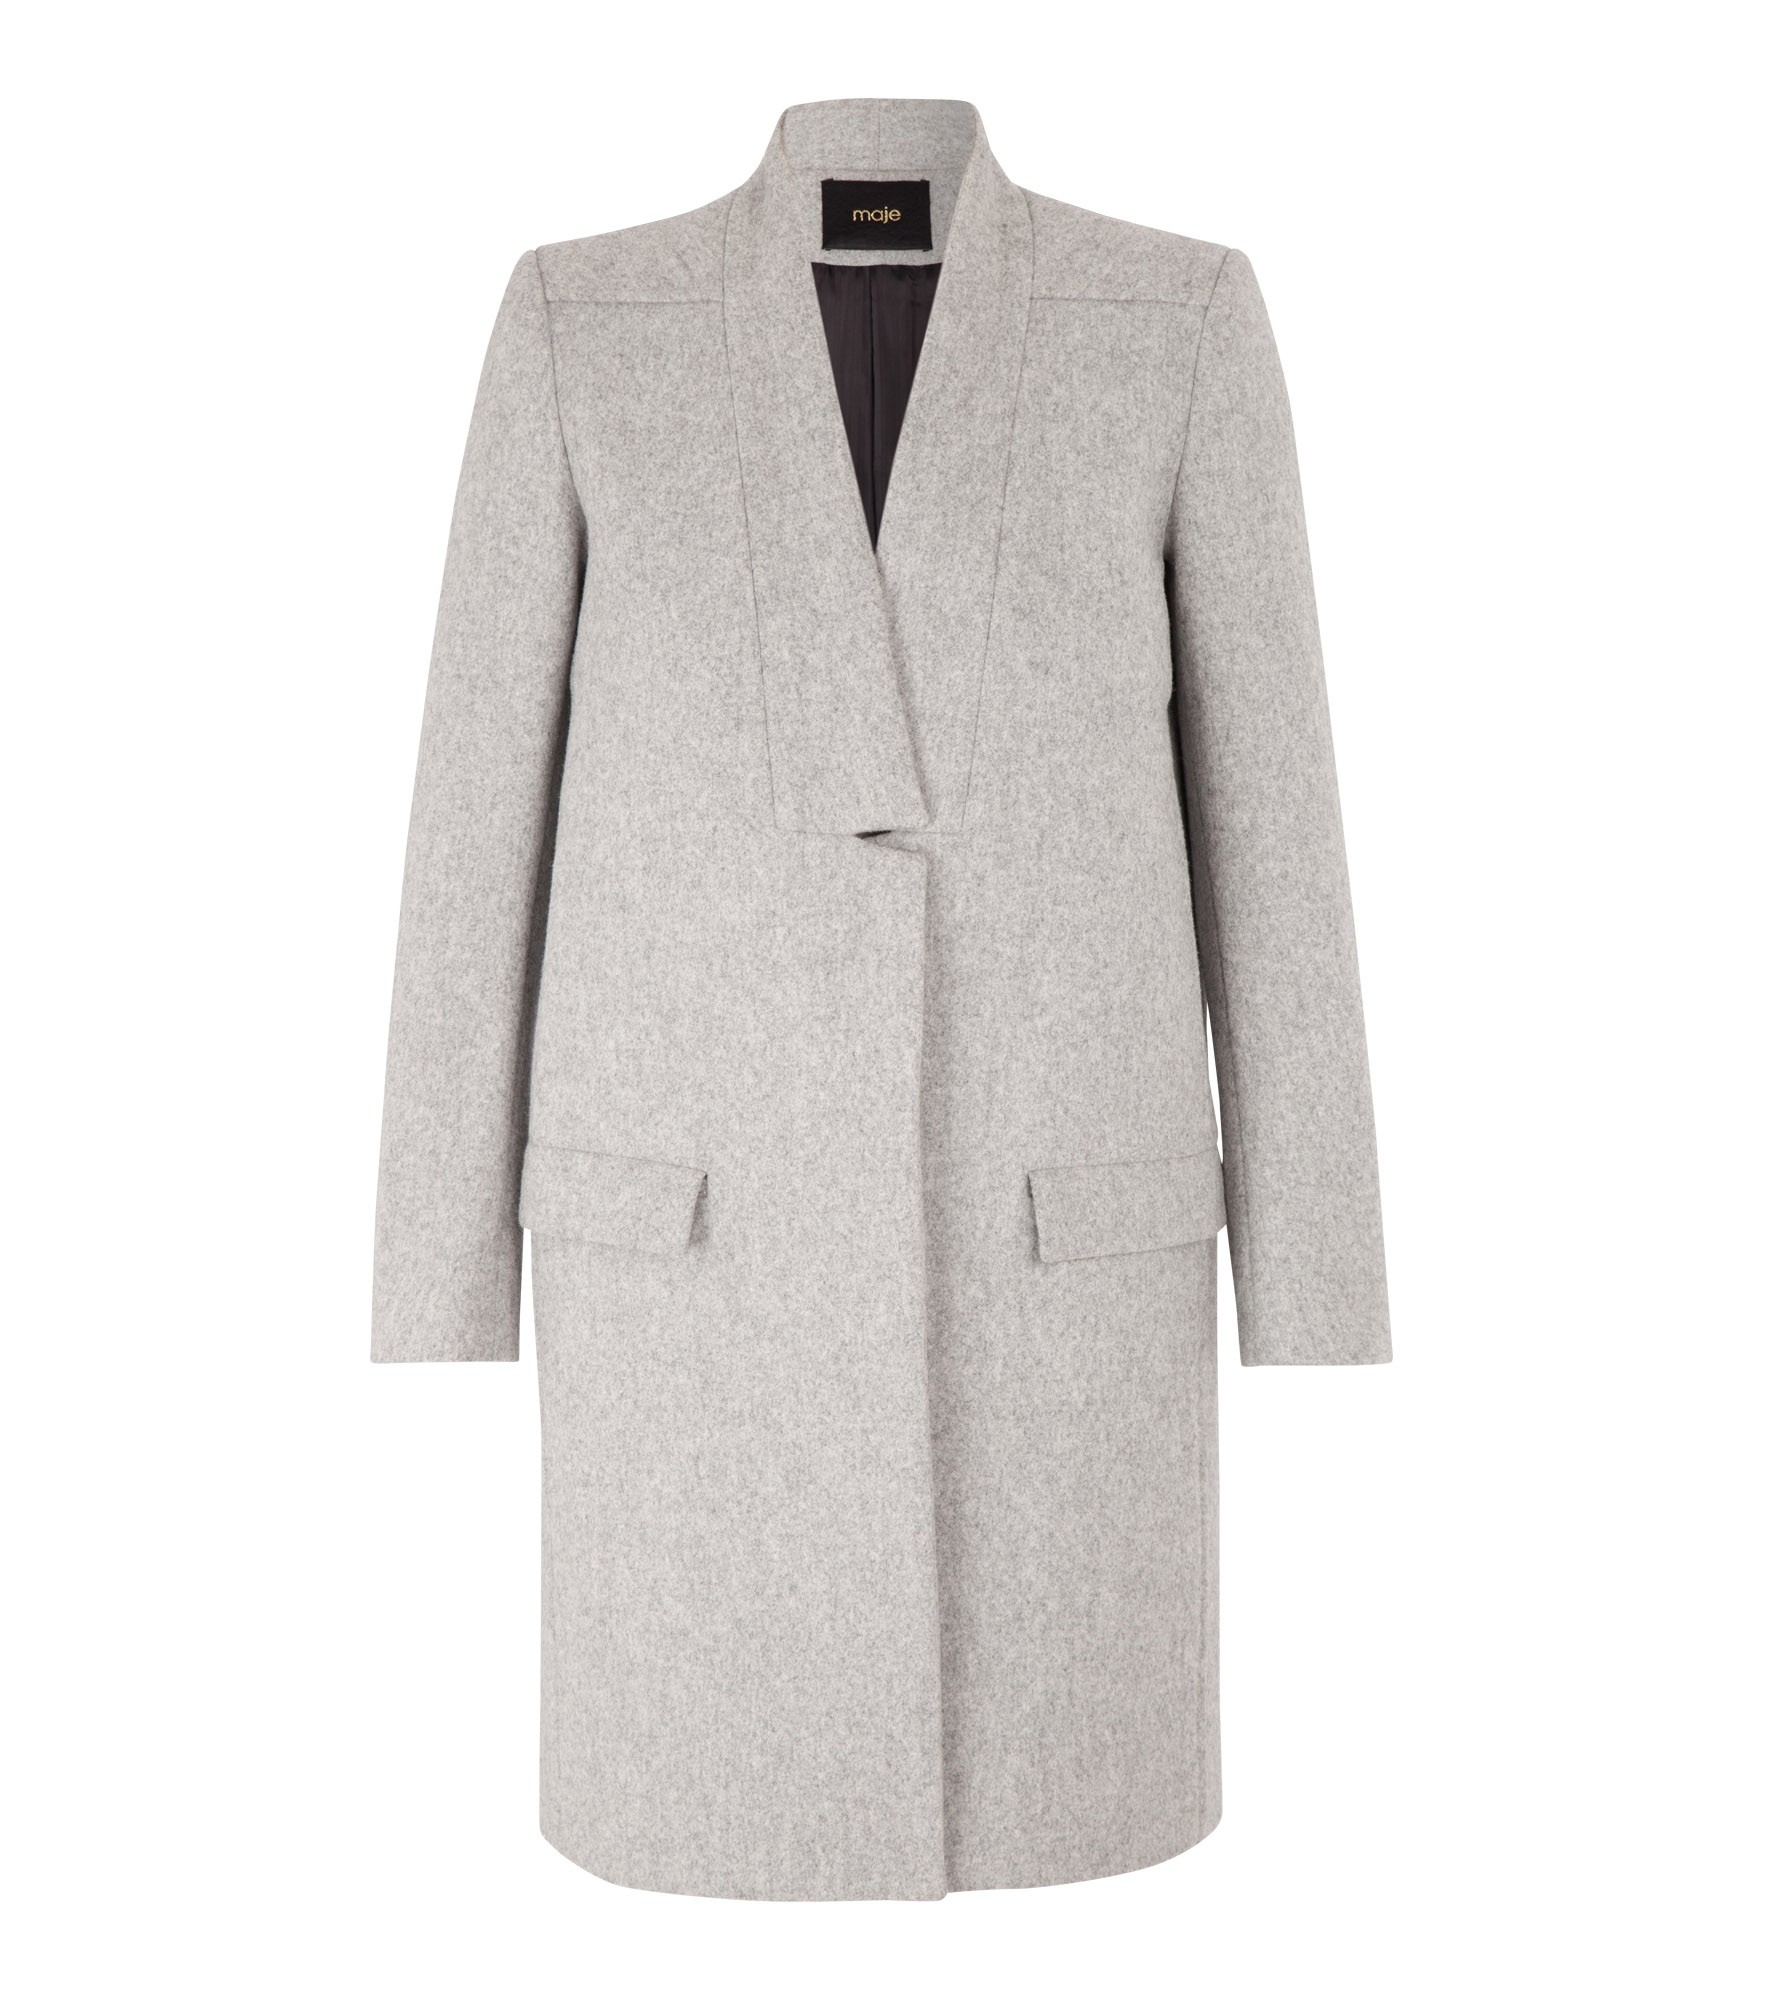 maje KLINTON Straight Fit Wool Coat at Maje US